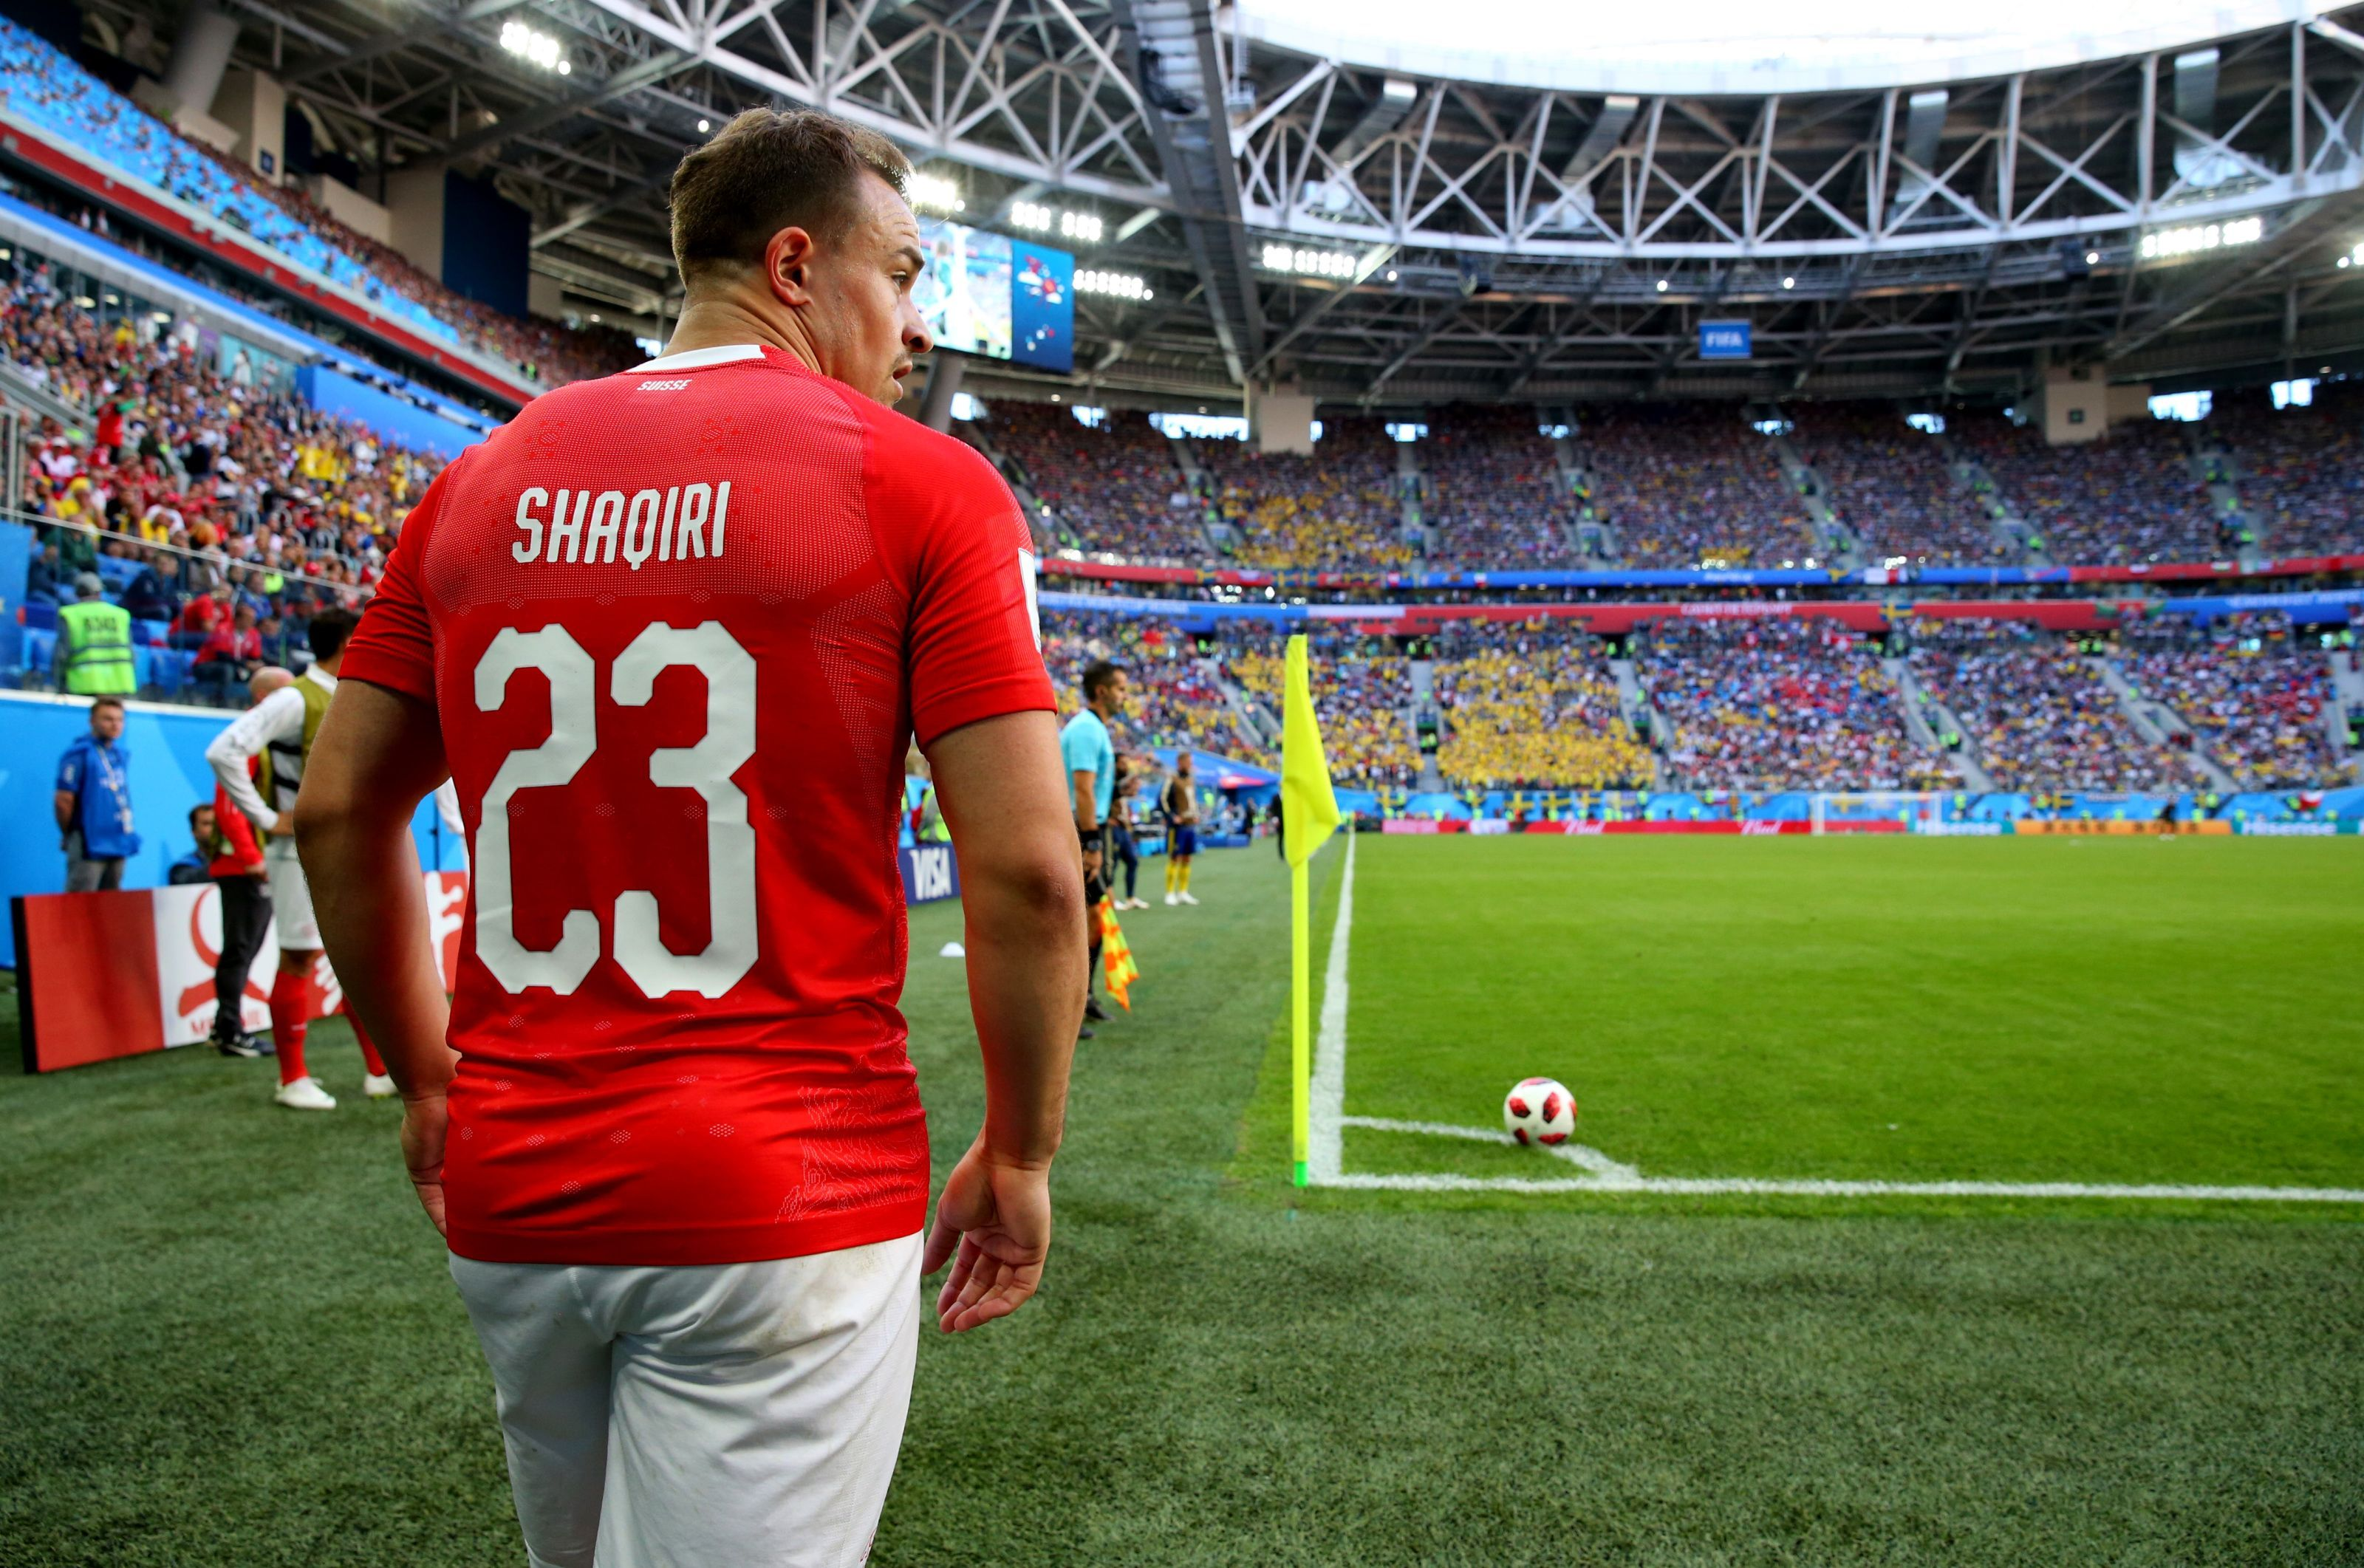 Liverpool Look Poised To Seal A Transfer Move For Xherdan Shaqiri From Stoke City His Arrival Will Mean The Final Nail In The Co Fifa World Cup Fifa Liverpool